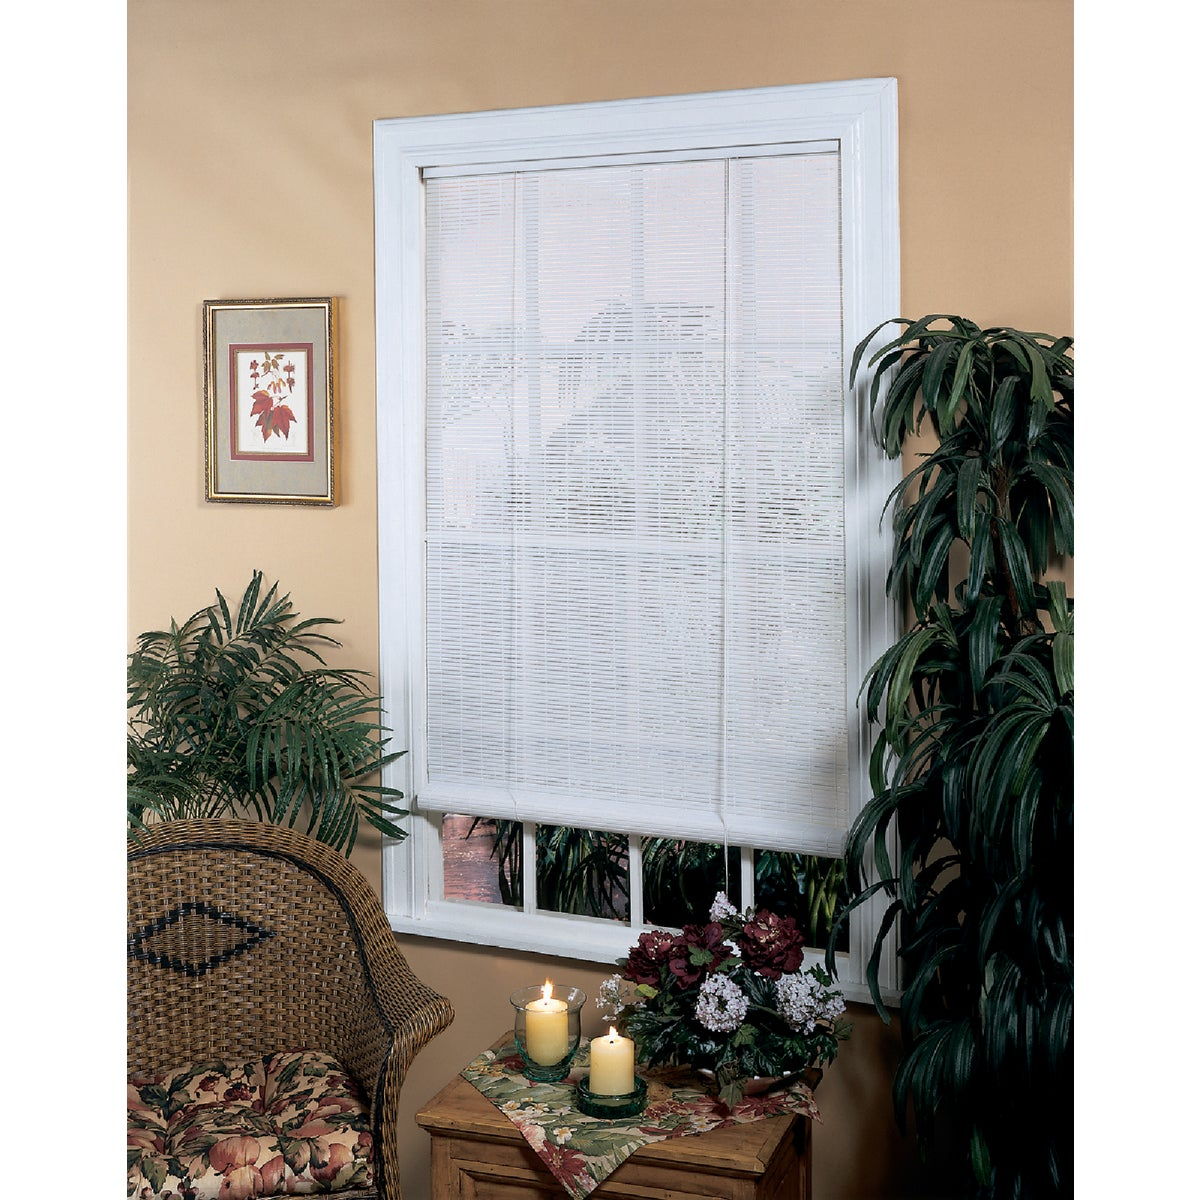 Do it Best Imports 48X72 WHT ROLL-UP BLIND 4872R101